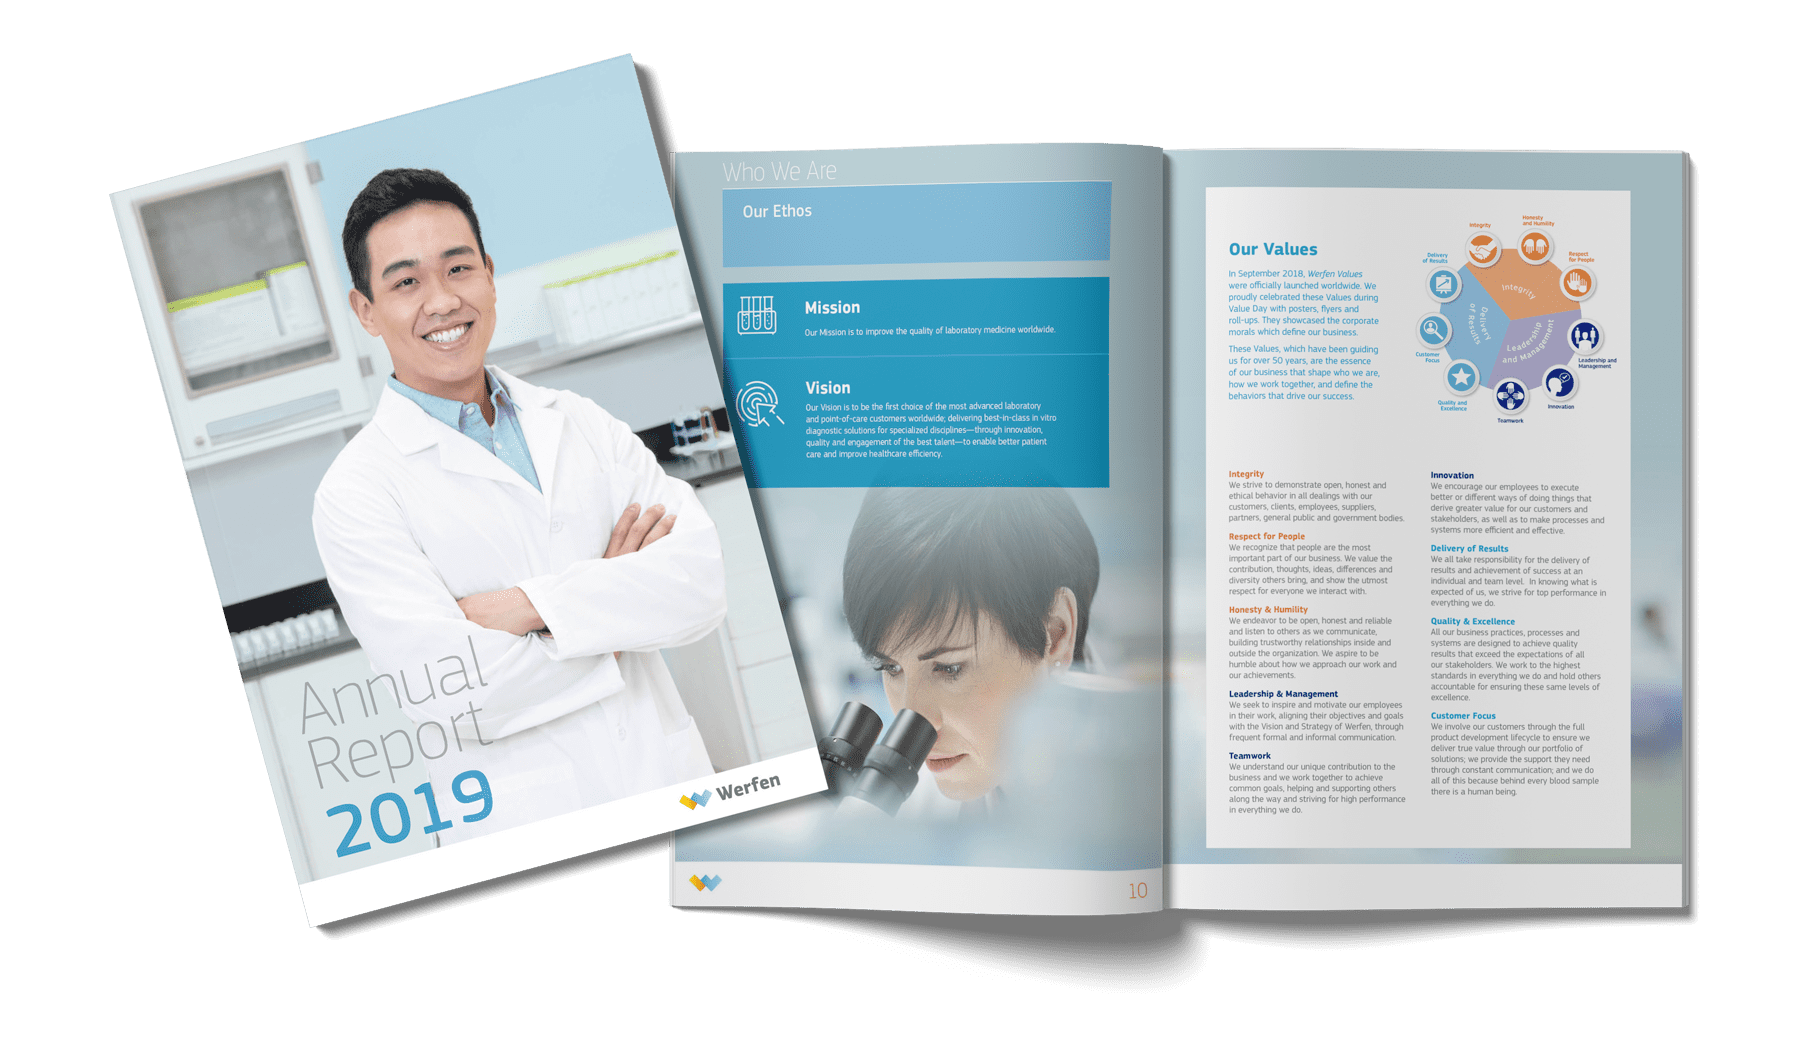 Werfen Annual Report 2019